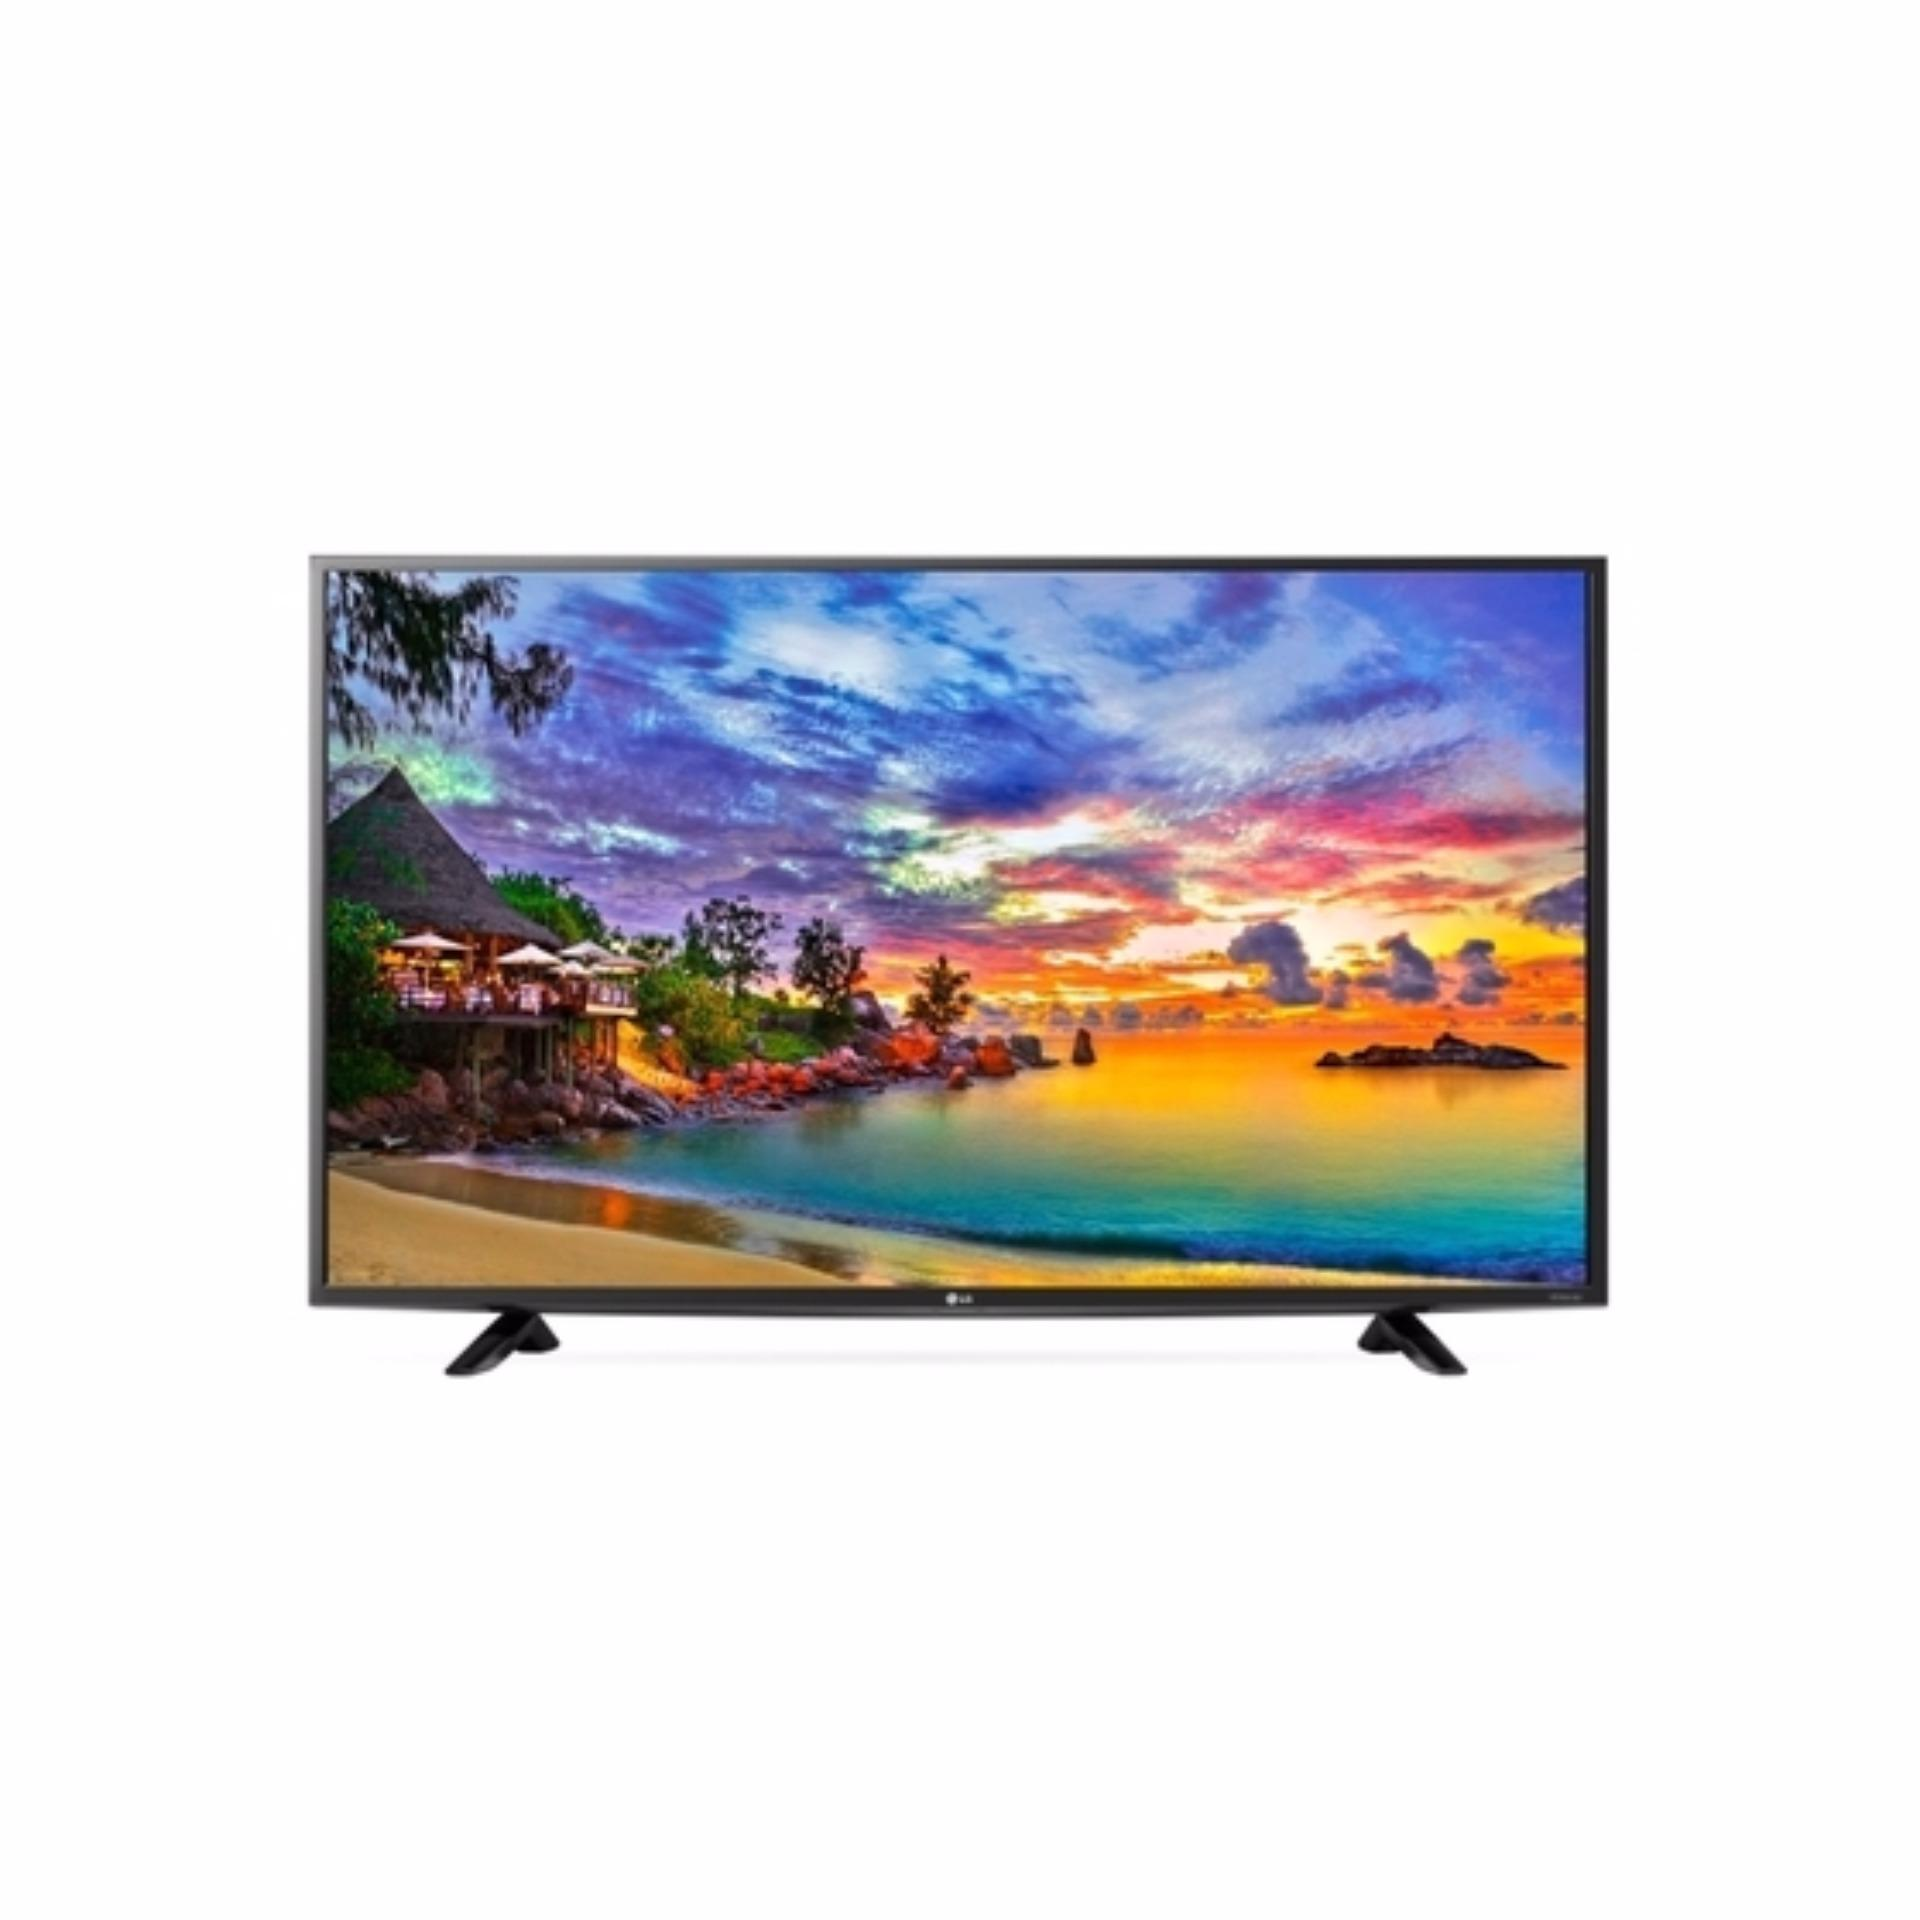 Jual Lg Led Tv 43Lh511 Hitam Branded Original